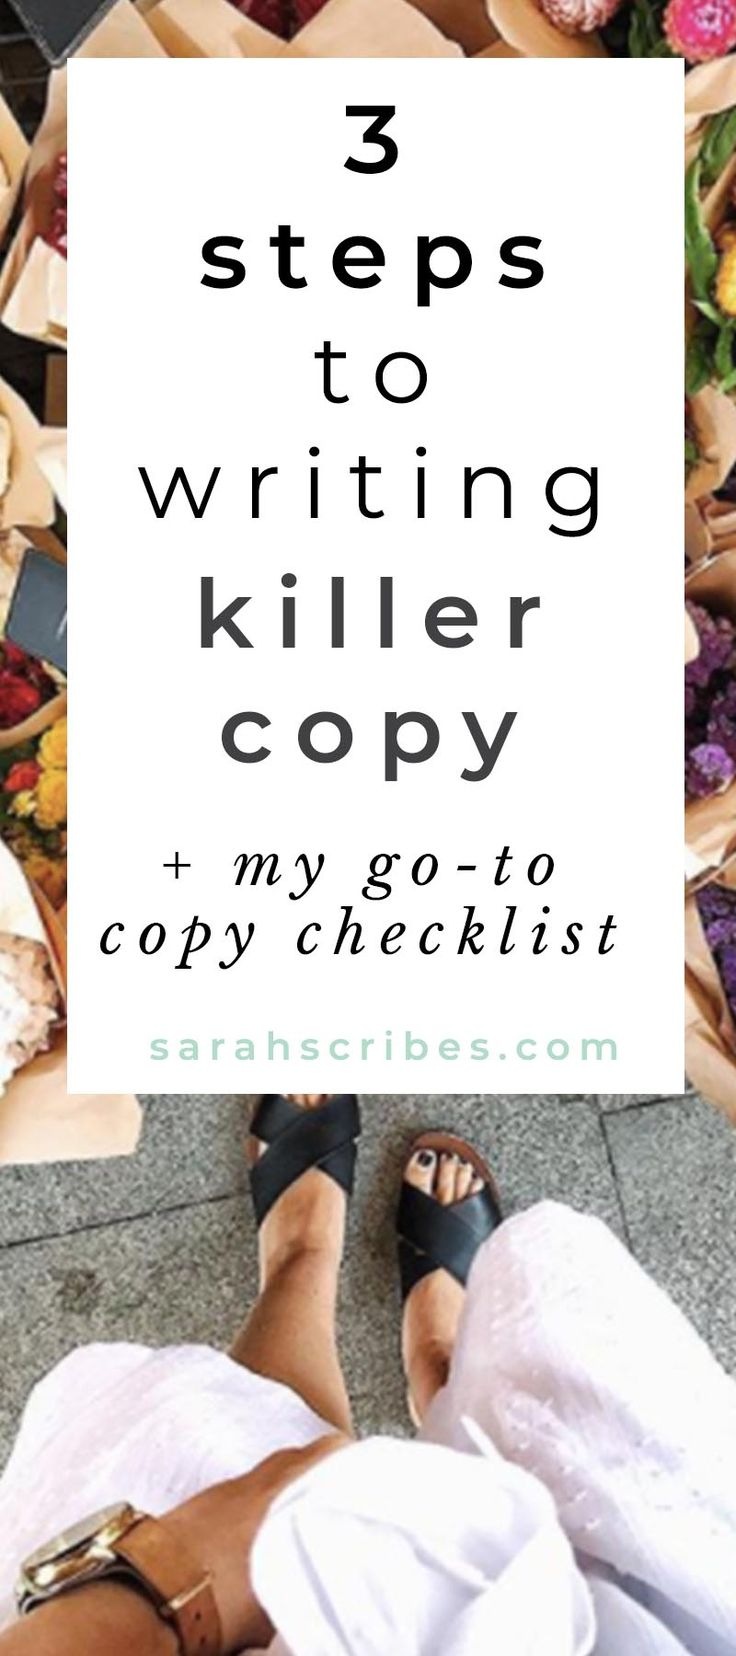 Best Copywriting Tips| Business Tips | Branding | Blogging Tips | Blog | Sarah Louise | Blog Ideas | Entrepreneur | Quotes | Fashion | Copywriting | Copy  #copywriting #copy #business #entrepreneur #socialmedia#branding #writingtips #writing #copy #quotes